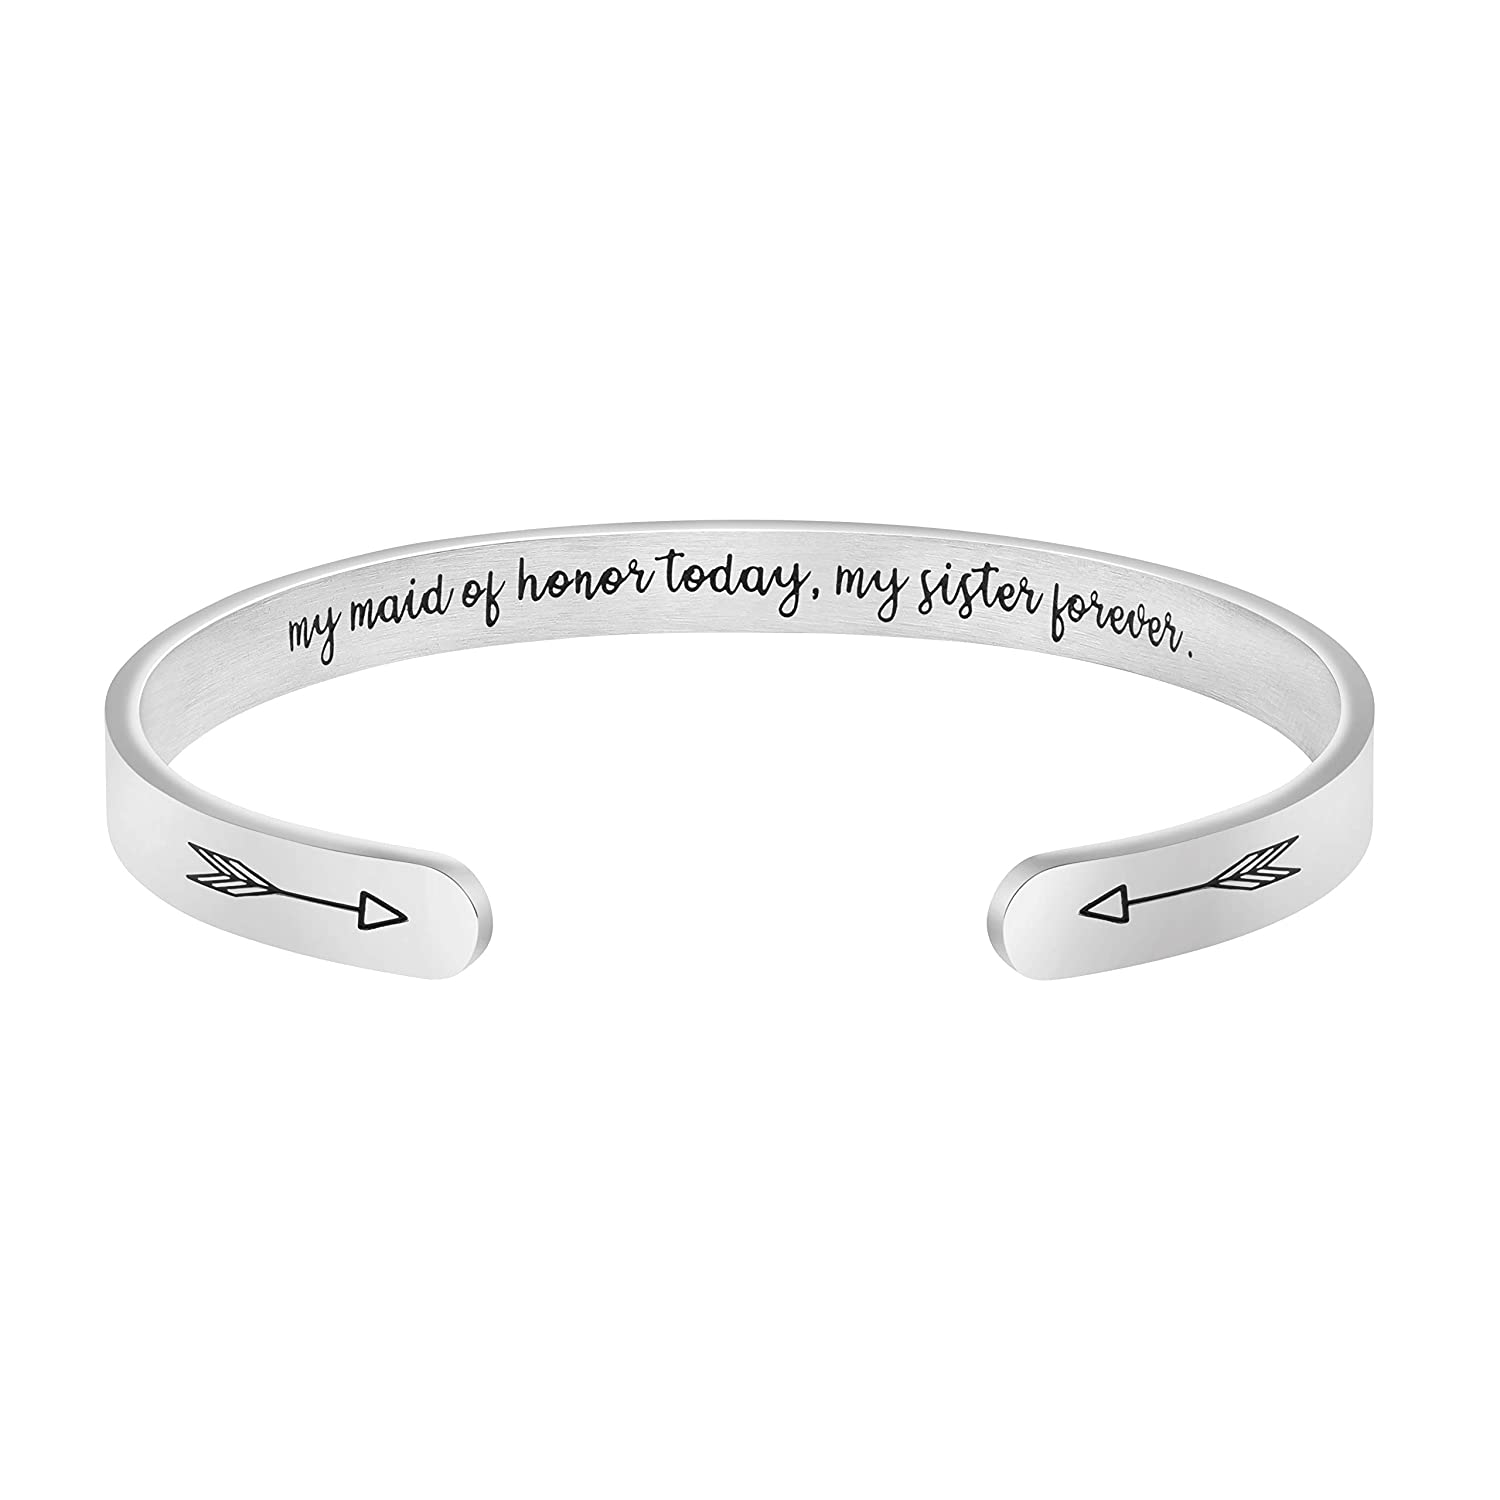 My Maid of Honor Today My Sister Forever Arrow Hidden Message Cuff Bracelet Bridesmaid Proposal Gift Wedding Jewelry Shiguang B07FR6P5XT_US